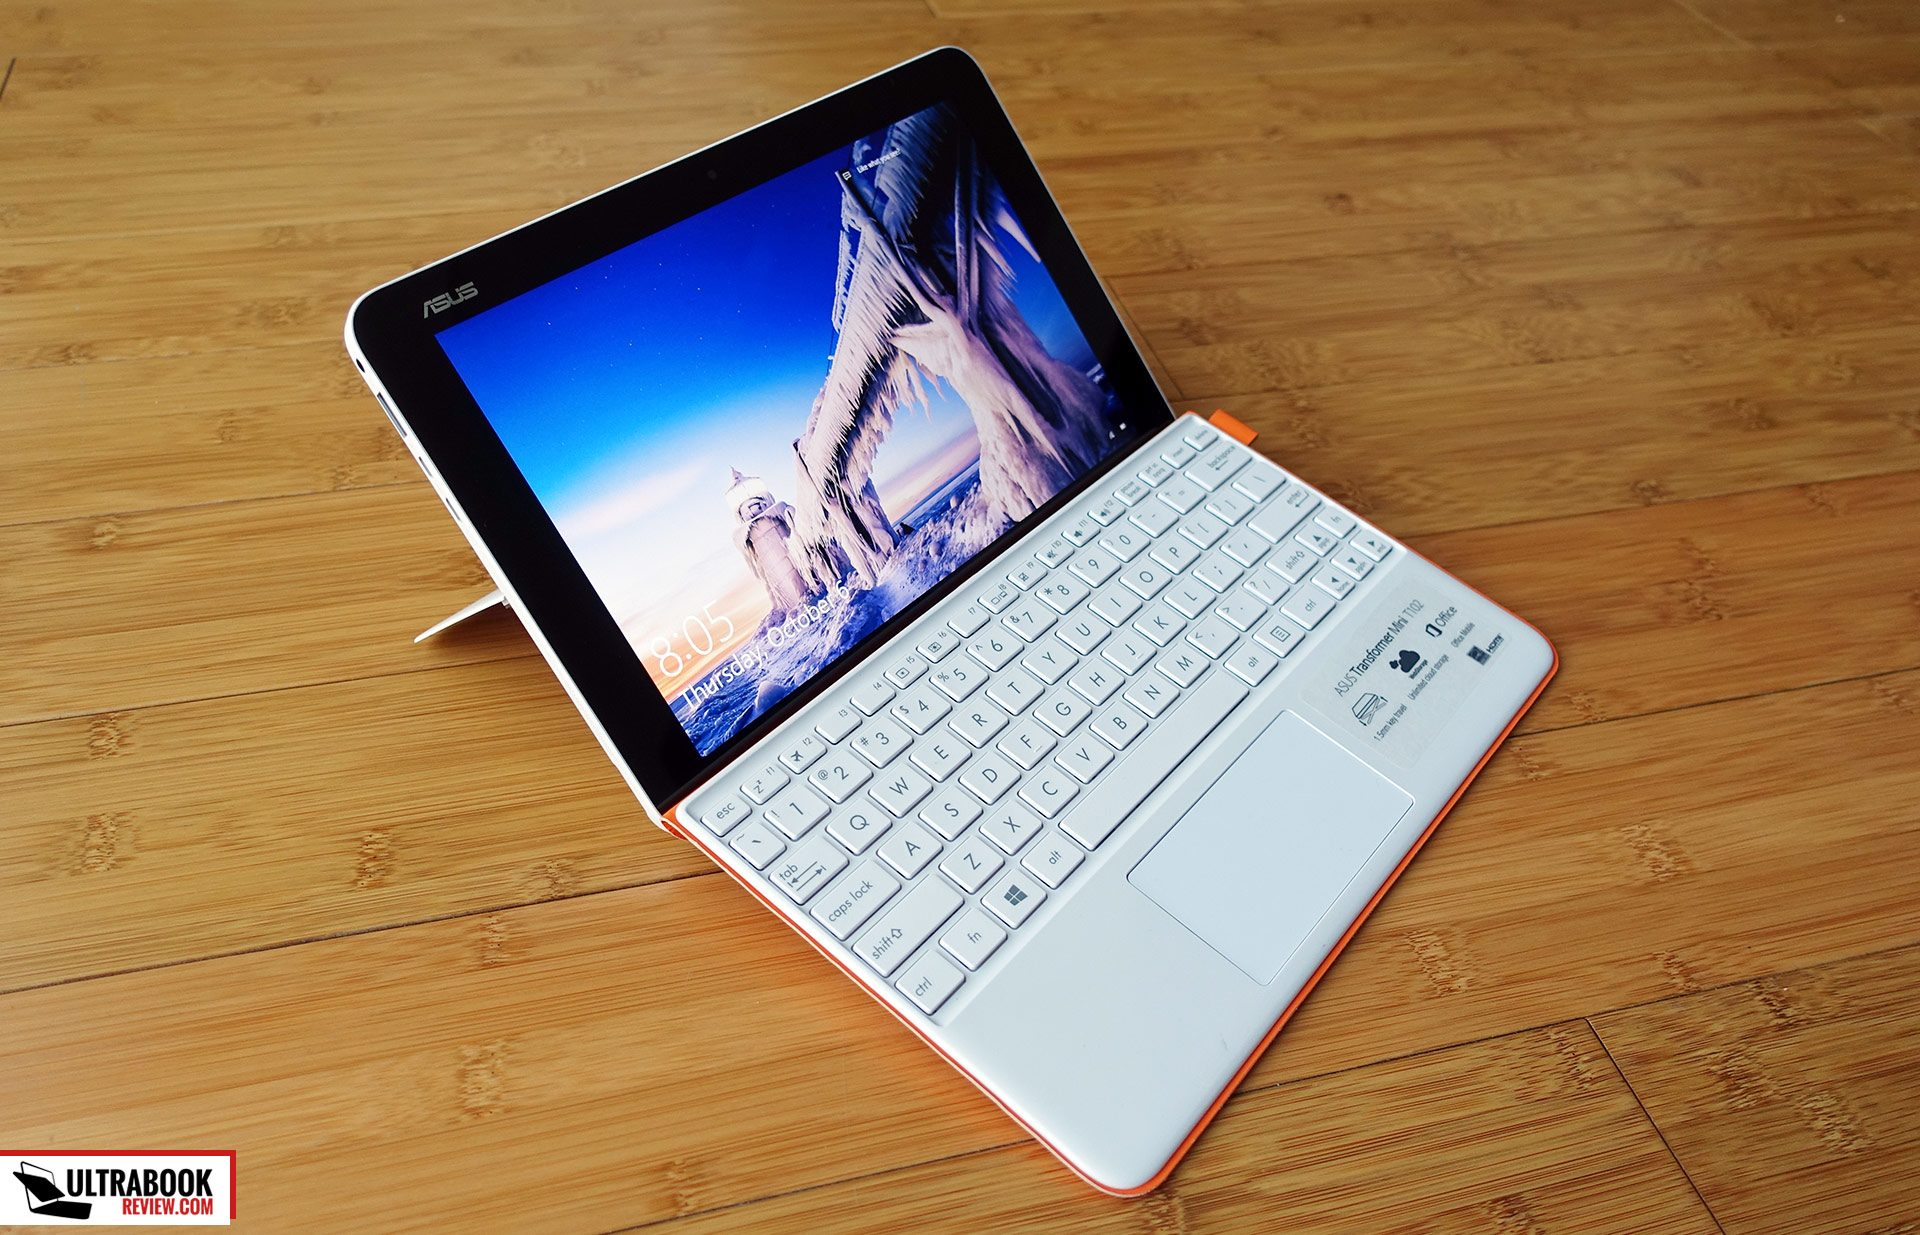 This is the Asus Transformer Mini T102HA in white, with the included orange/white keyboard folio